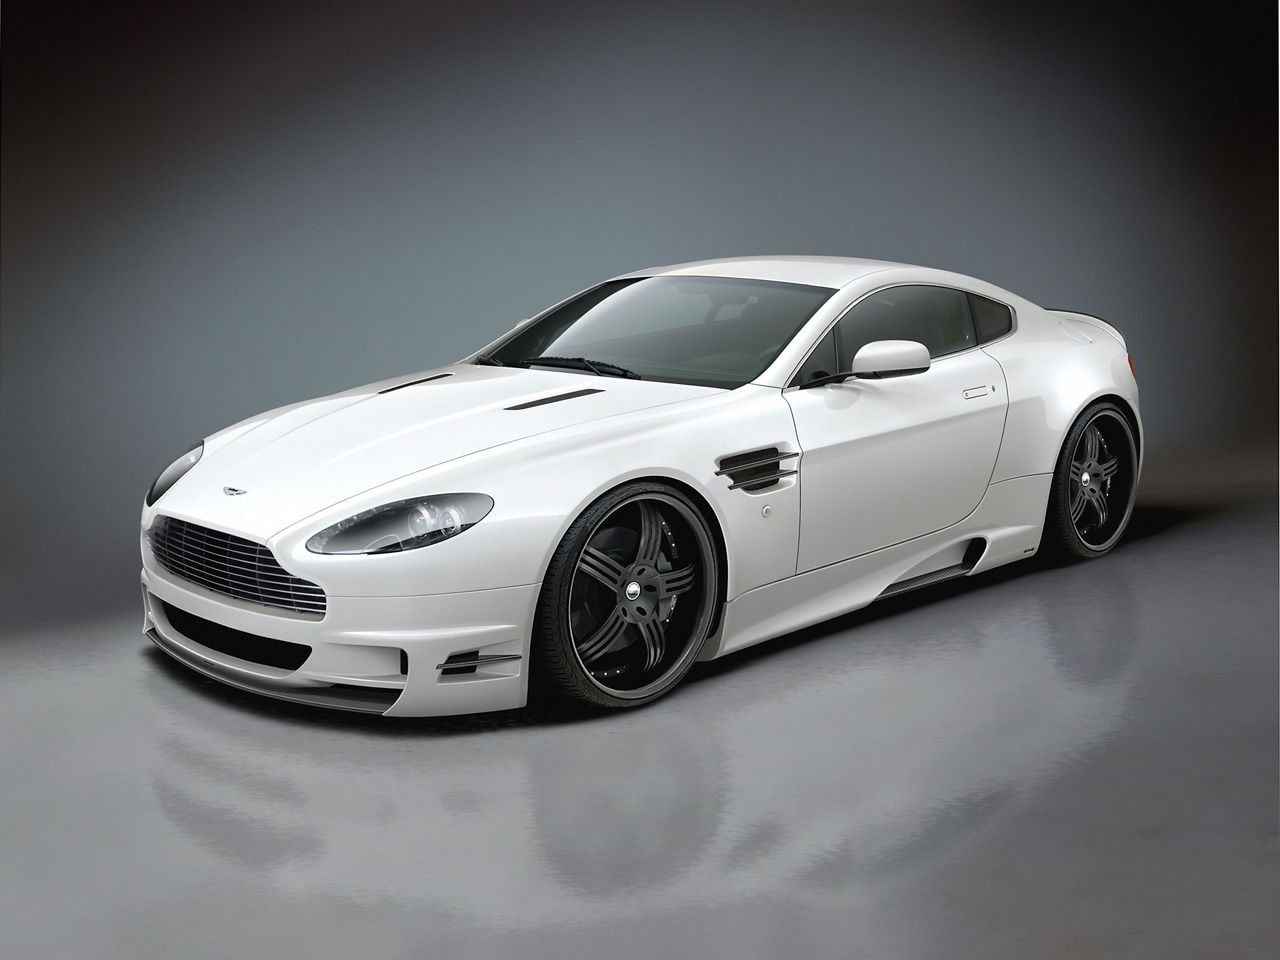 Best Wallpapers Aston Martin Vantage Wallpapers 1280x960